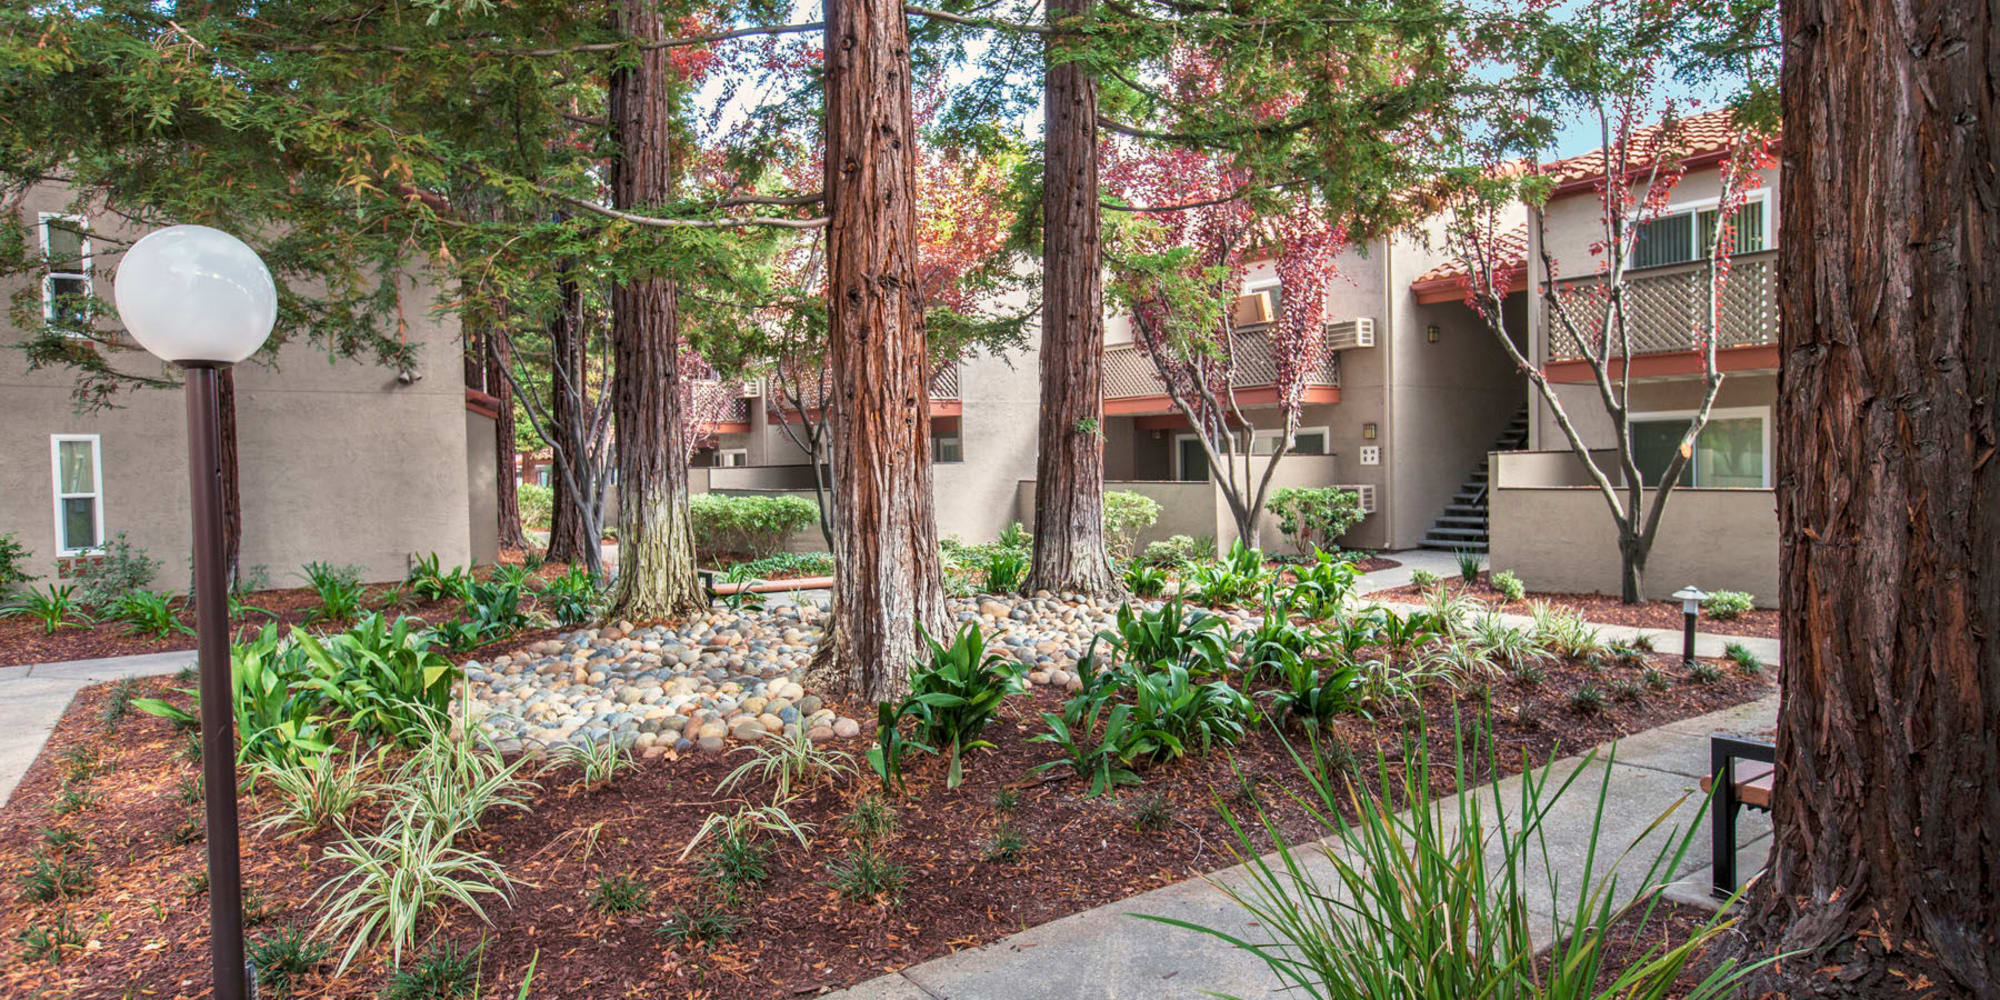 Professionally maintained landscaping and mature trees between resident buildings at Valley Plaza Villages in Pleasanton, California